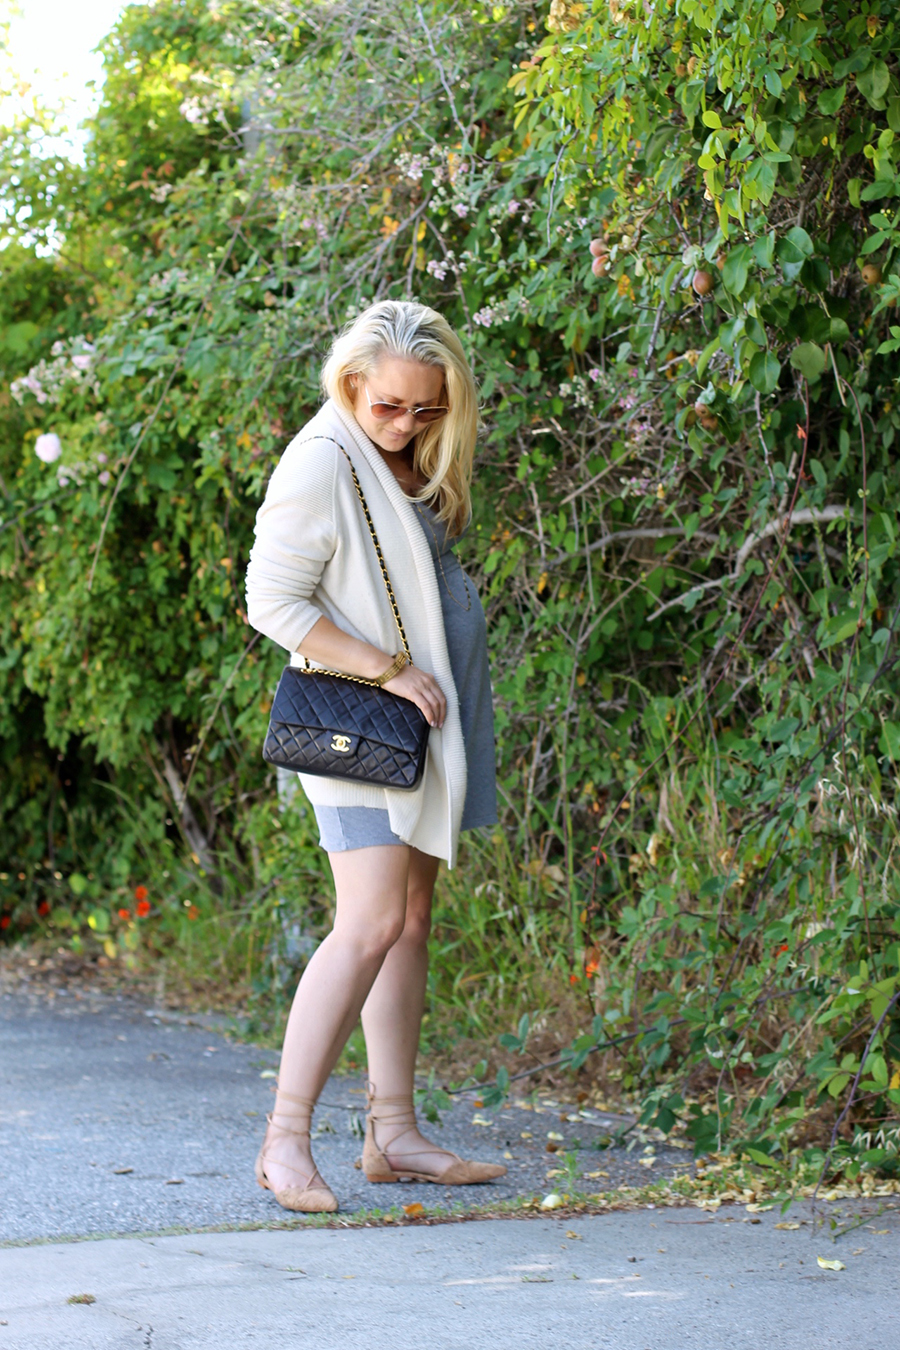 Grey Jersey Mini Dress-Maternity Style-Outfit Inspiration-Pregnancy Style-Have Need Want 10